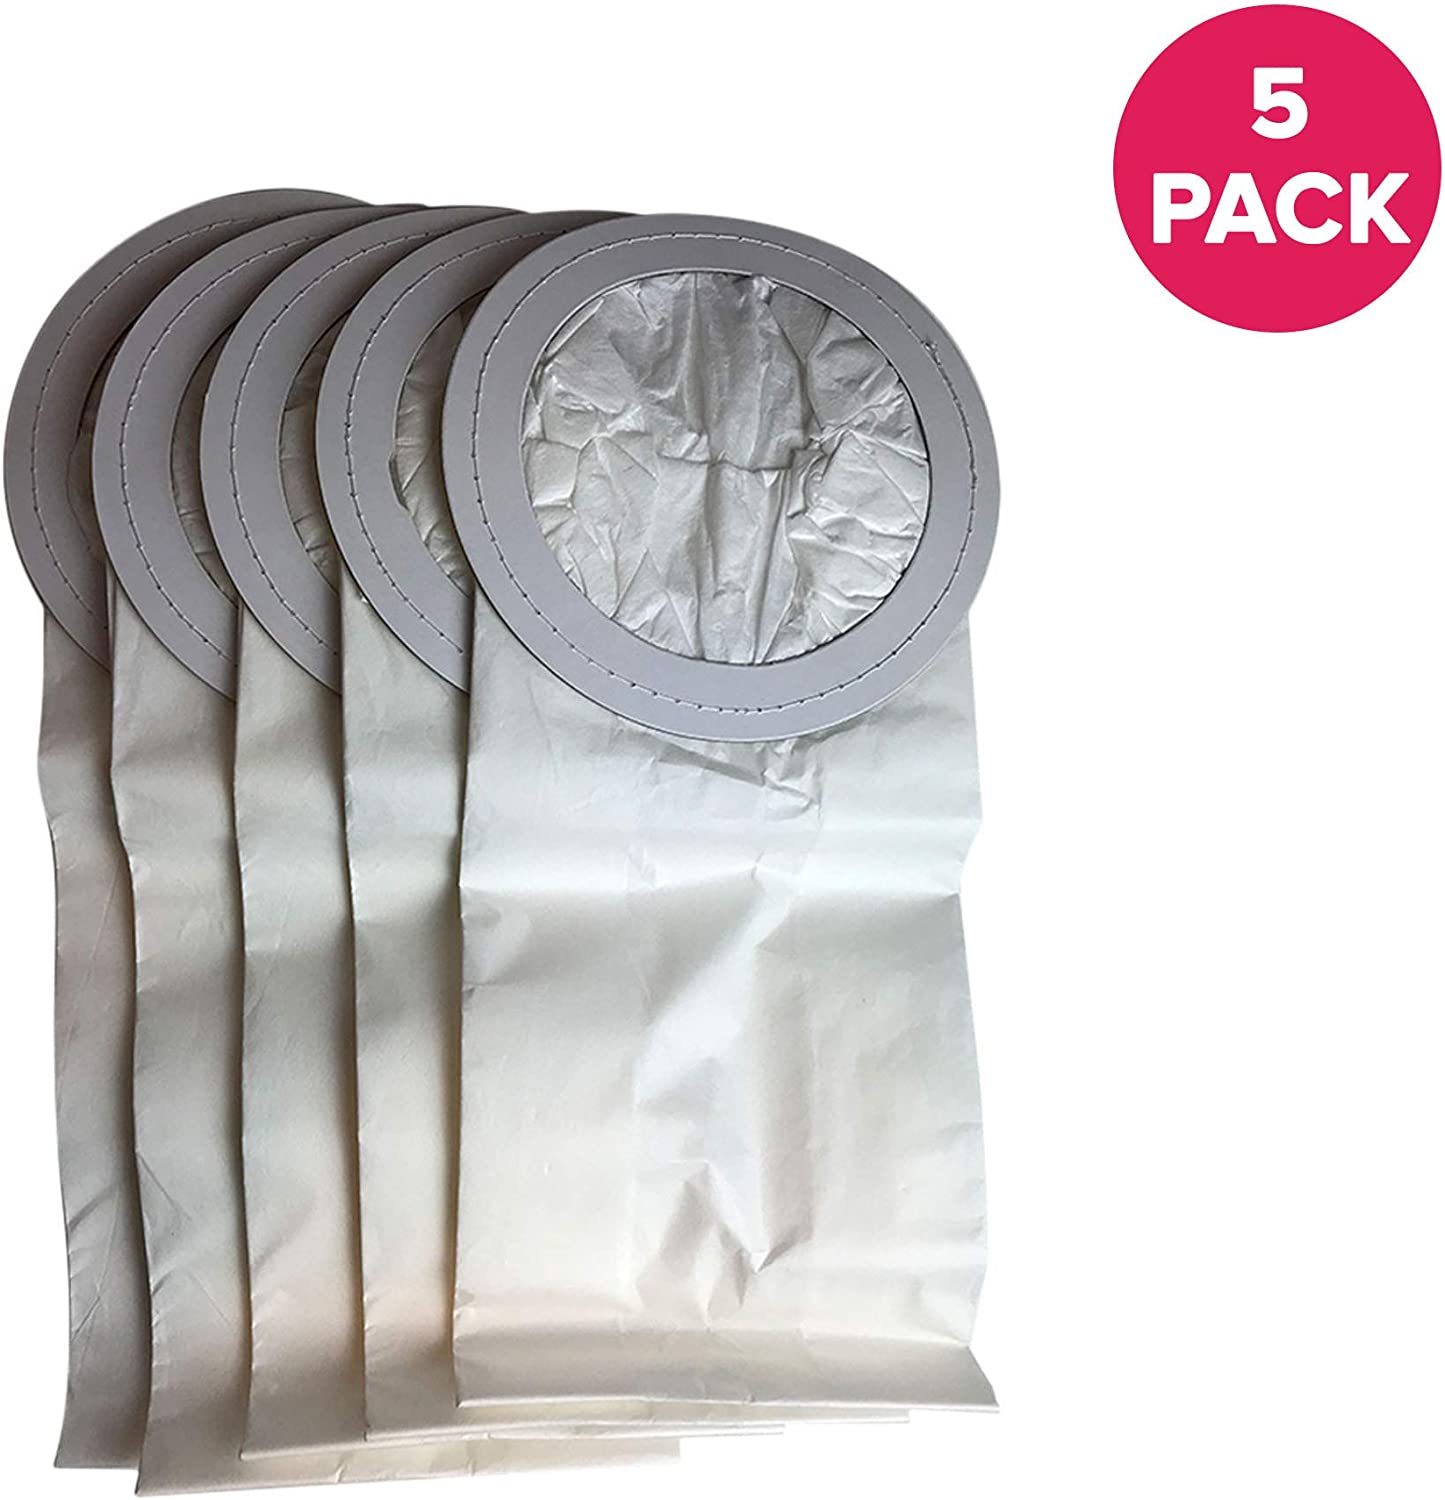 Crucial Vacuum Replacement Vac Bags Part # 100331 - Compatible with ProTeam 10 QT Bags Fit 10-Quart Vac Bags - Compact Disposable Bag - Home, Vacs, Models - Perfect for Reducing Debris (5 Pack)